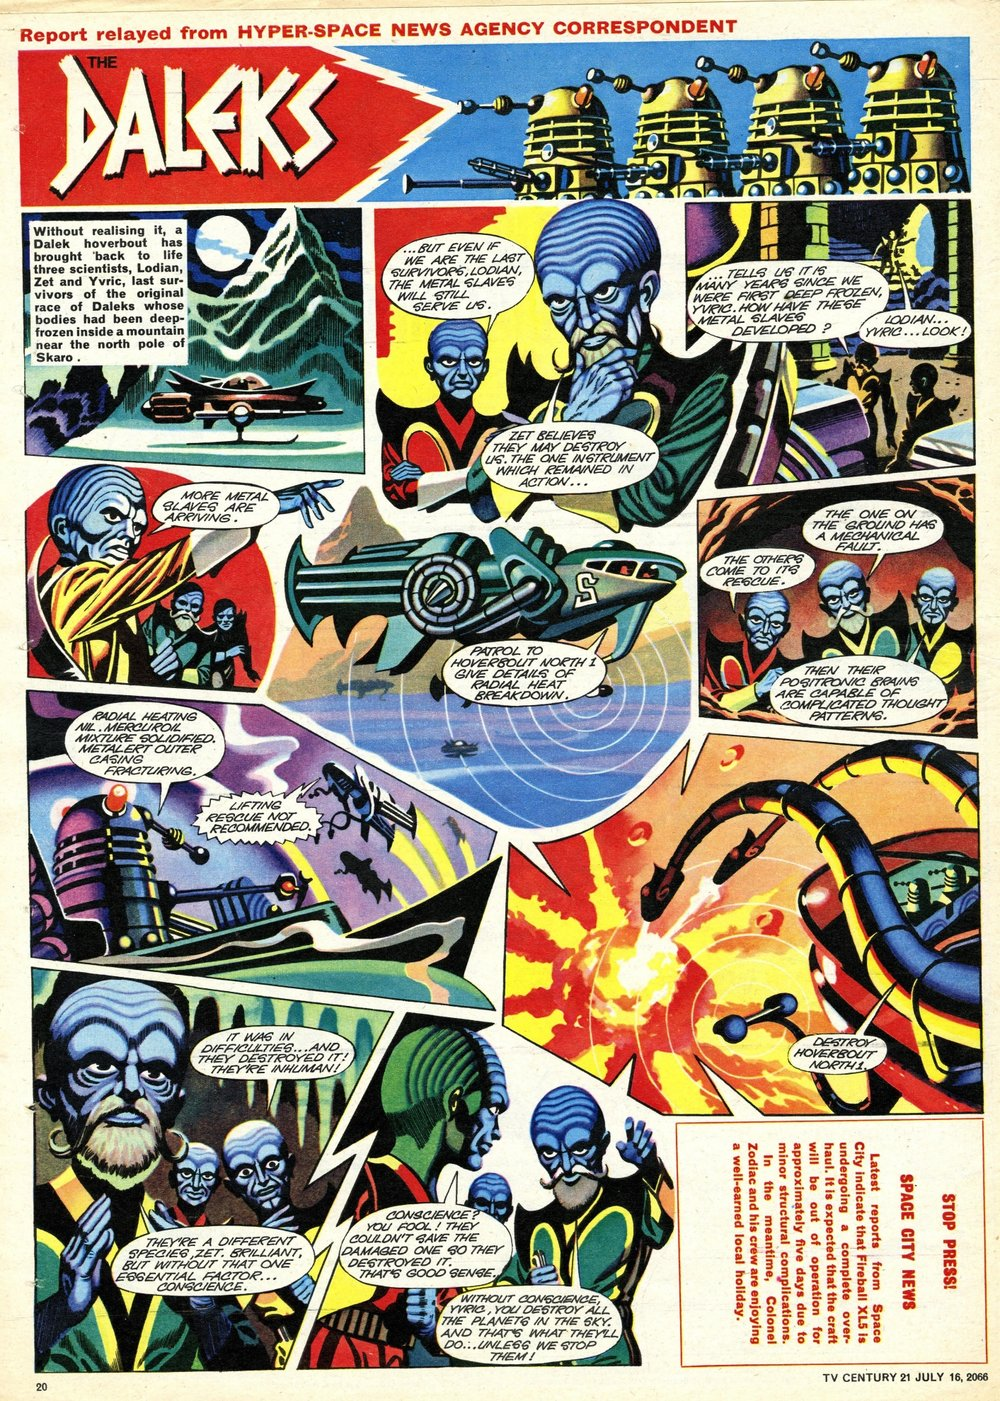 TV Century 21, no. 78, 16 July 2066 (1966), showing new masthead on the Daleks strip